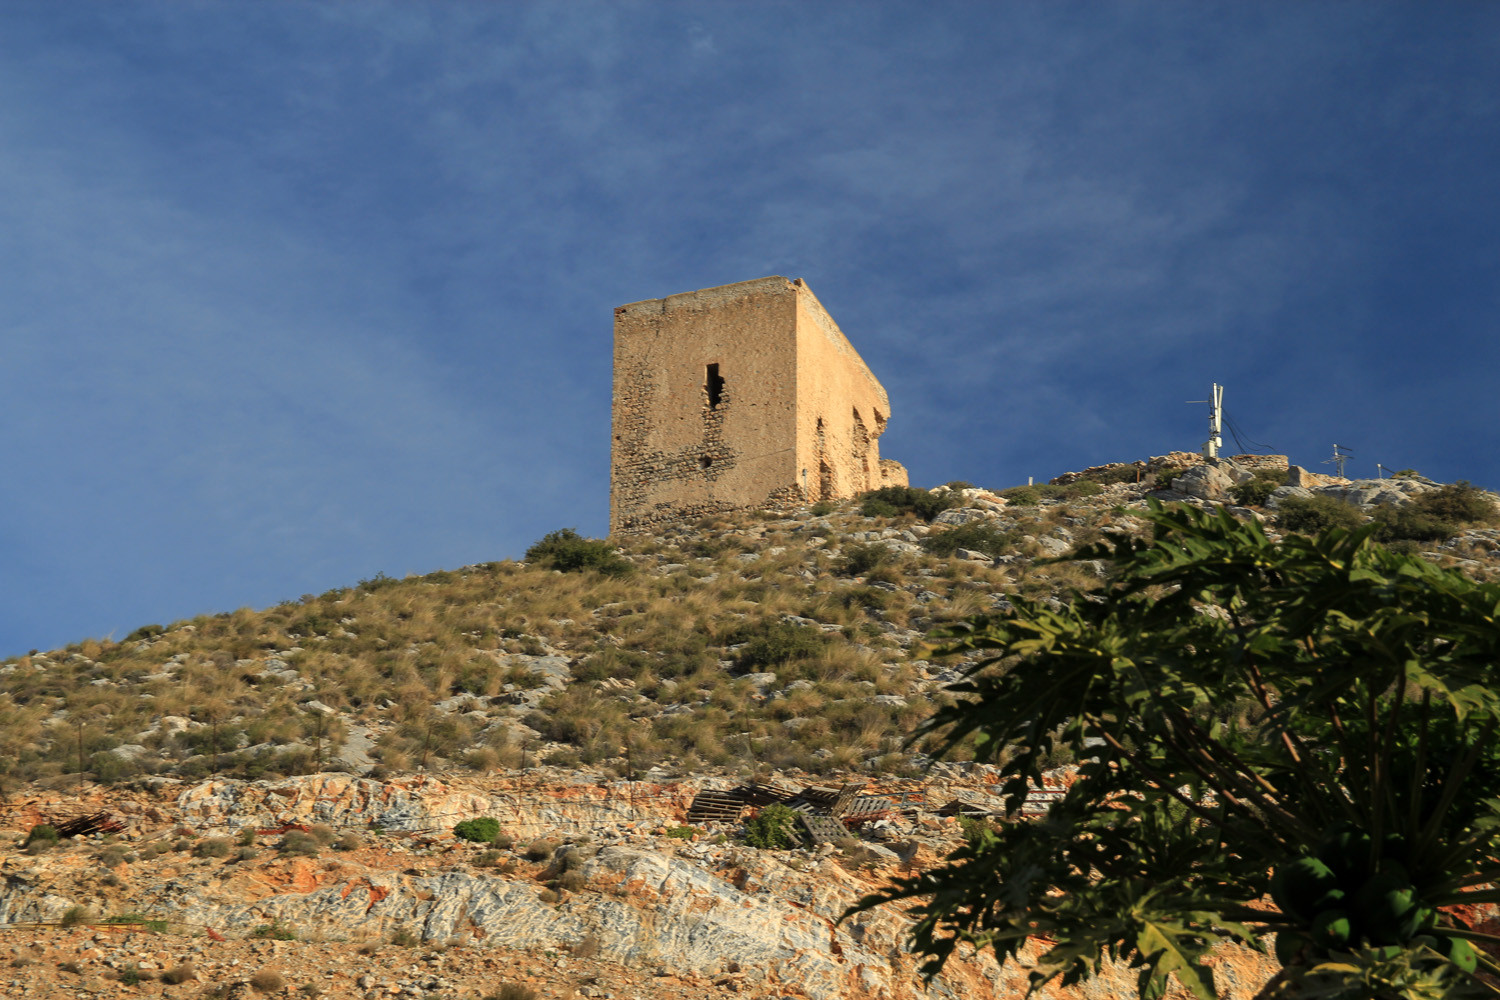 The Roman Tower of Castell de Ferro